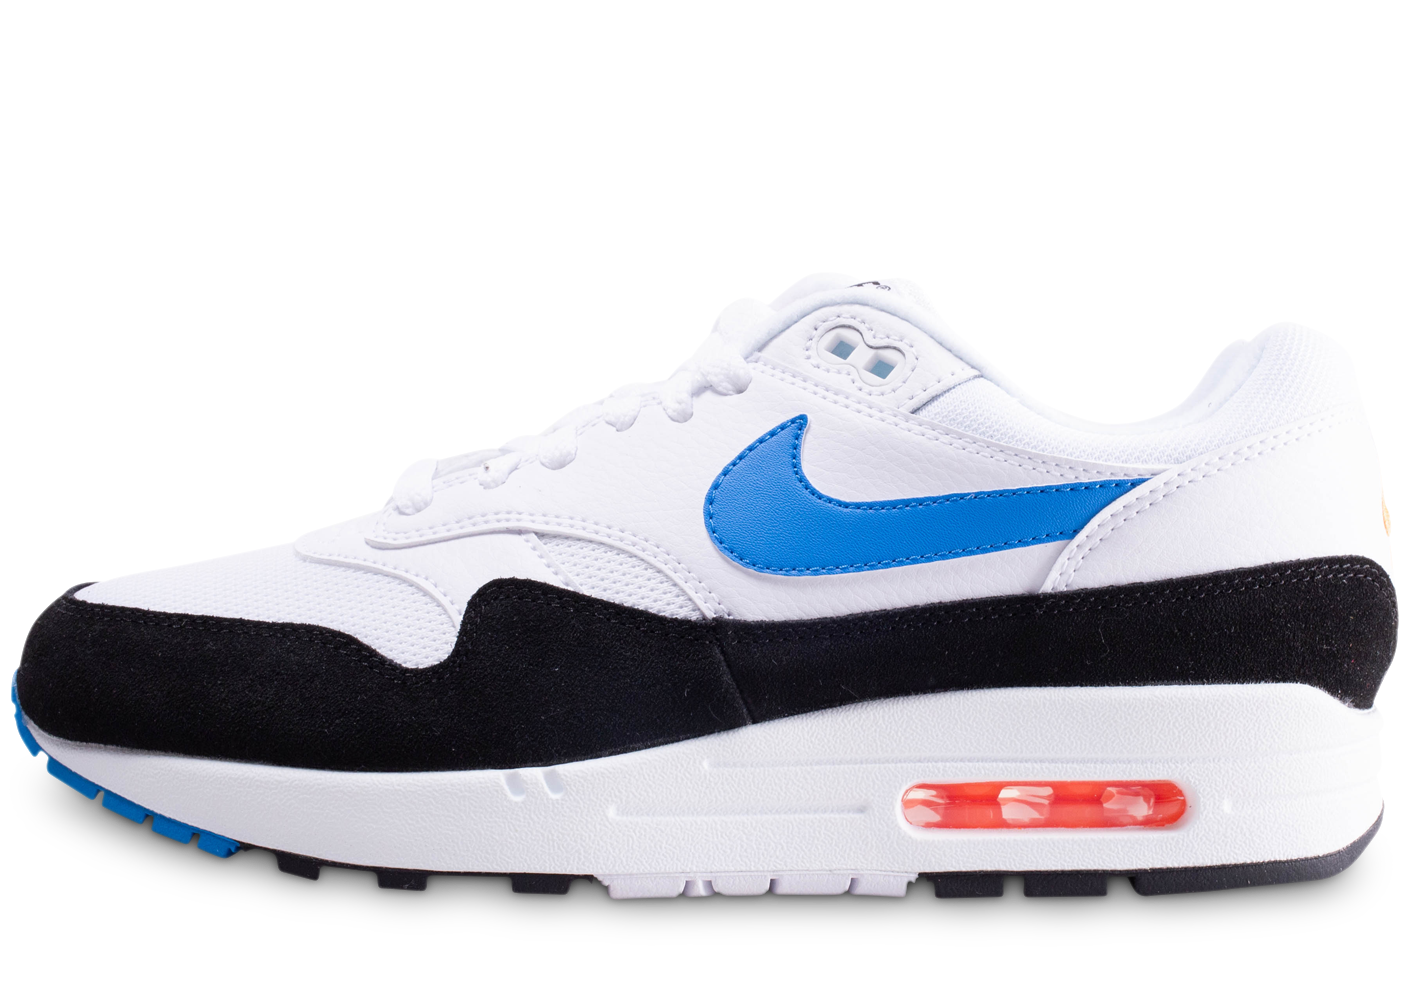 new products f83c1 04301 Nike homme air max 1 blanche et bleue baskets